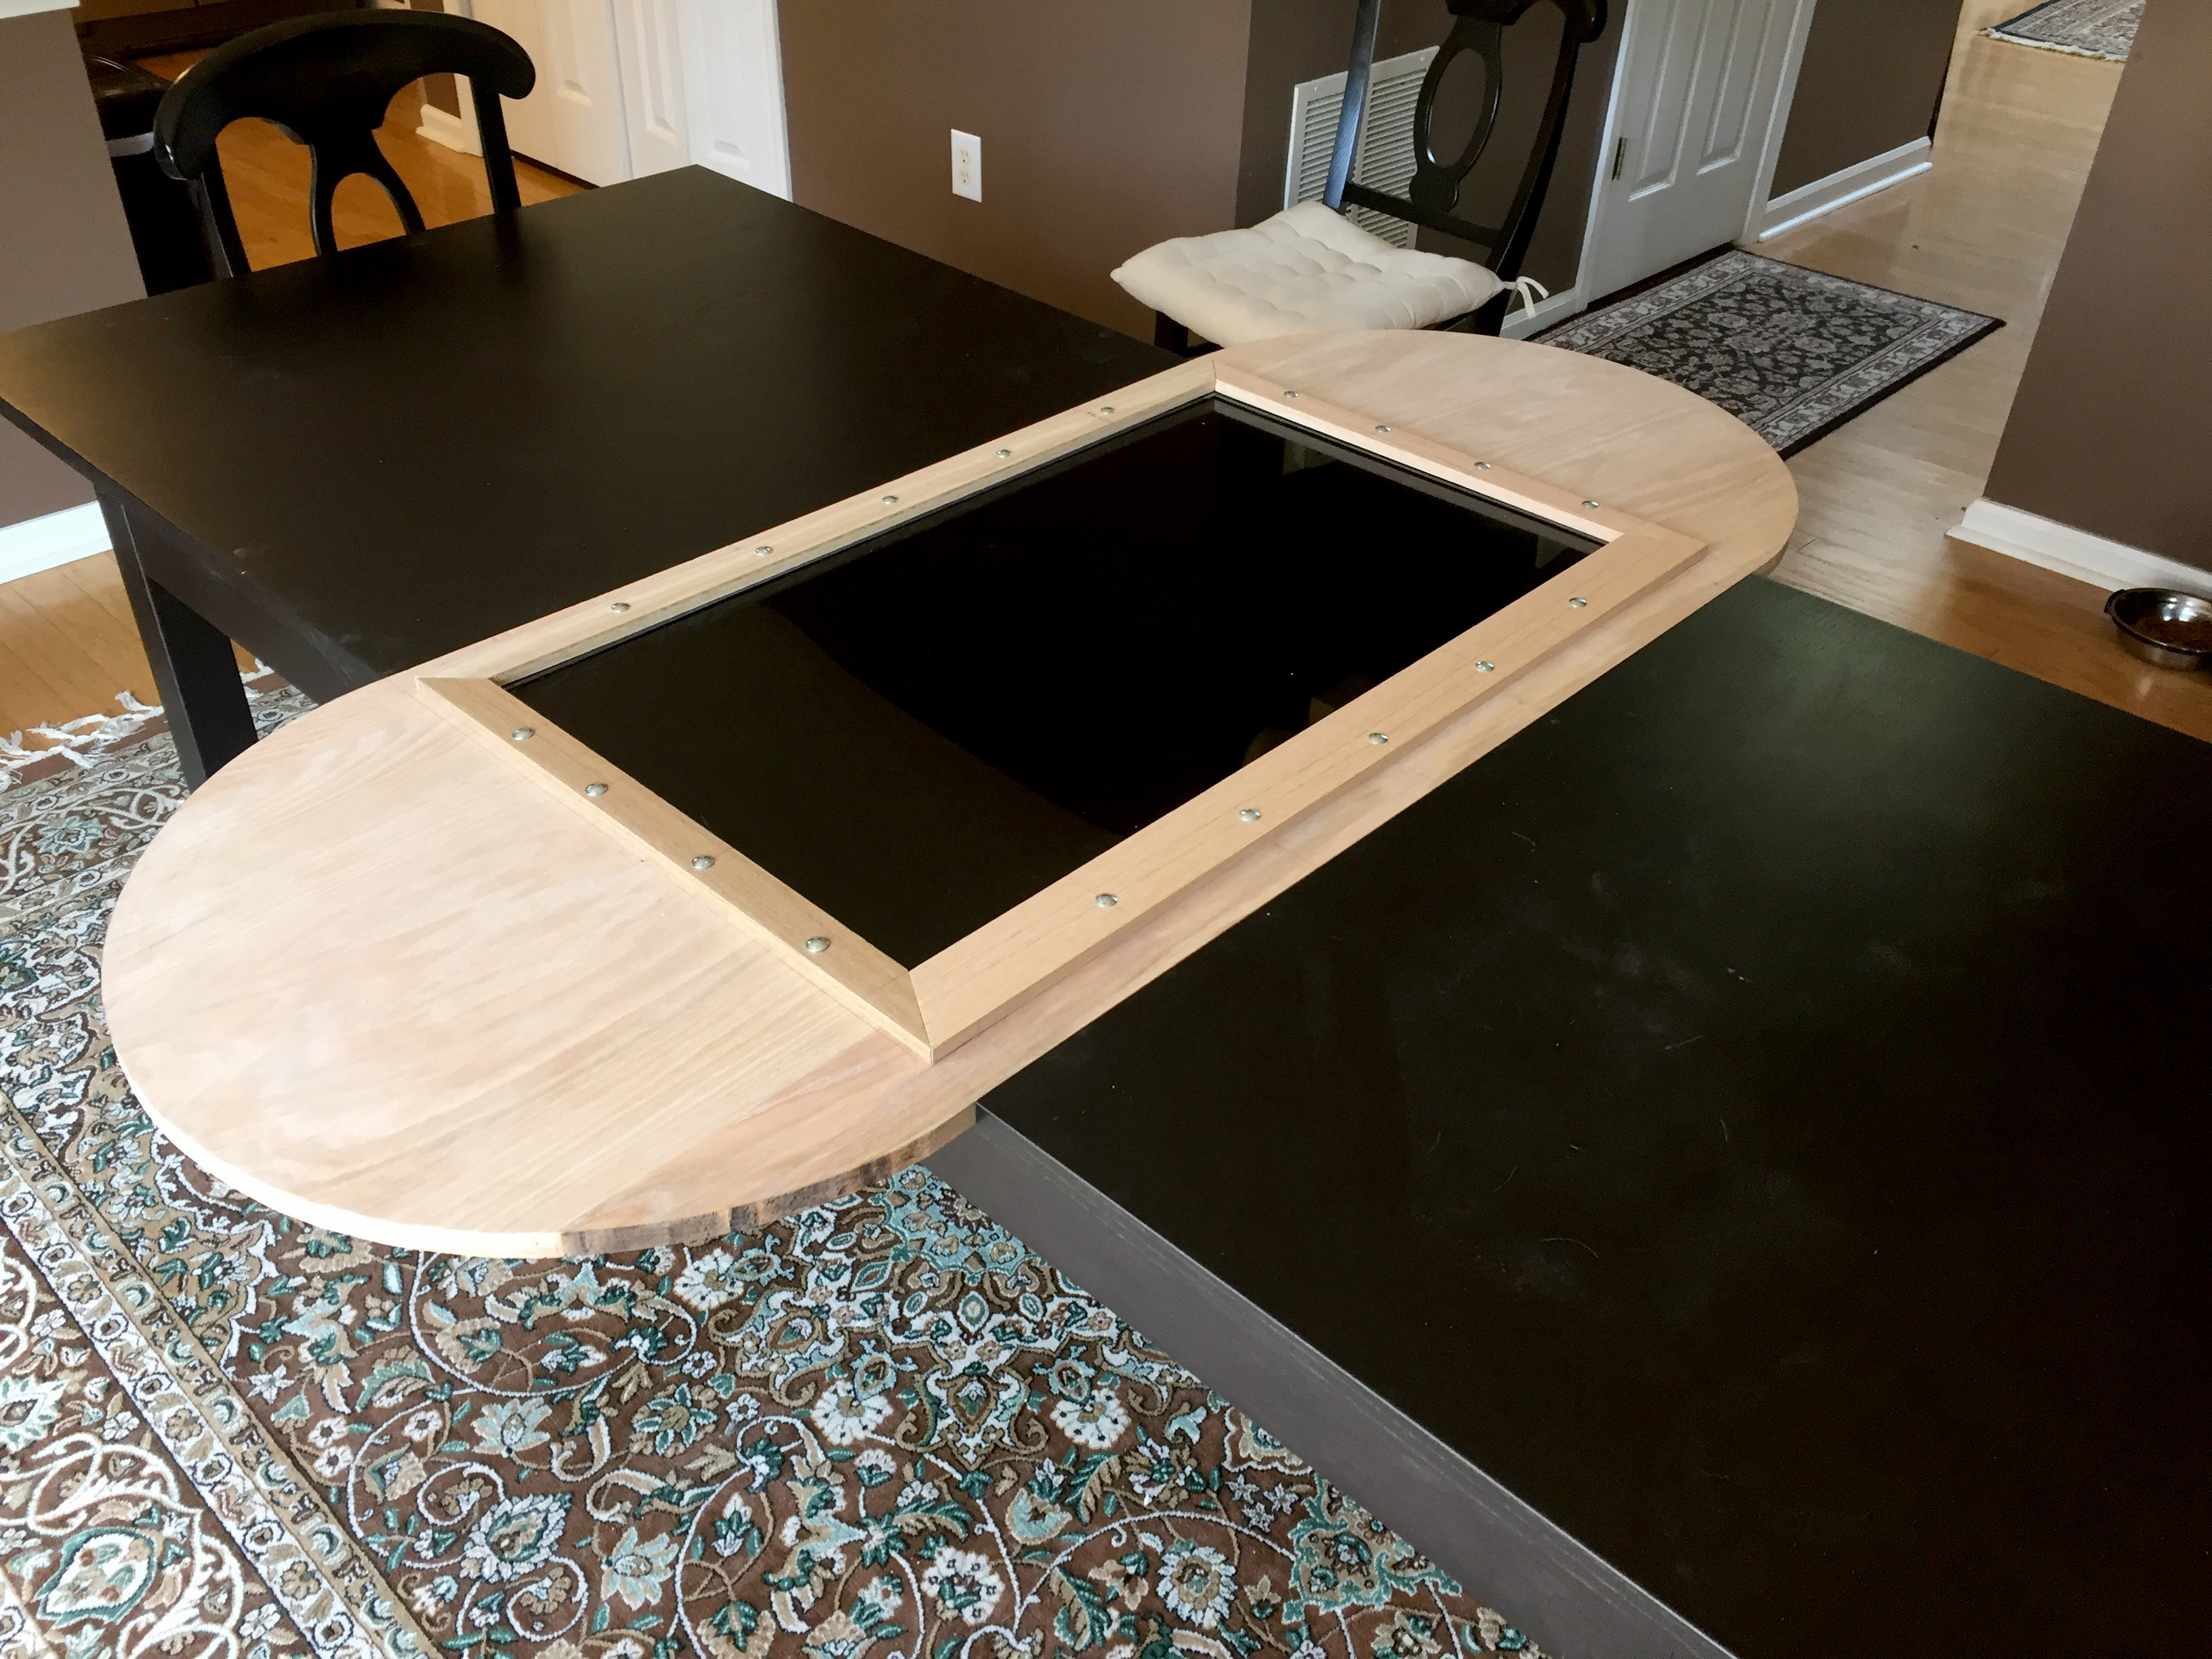 How To Make An Awesome Rpg Gaming Table Ftw Gallery